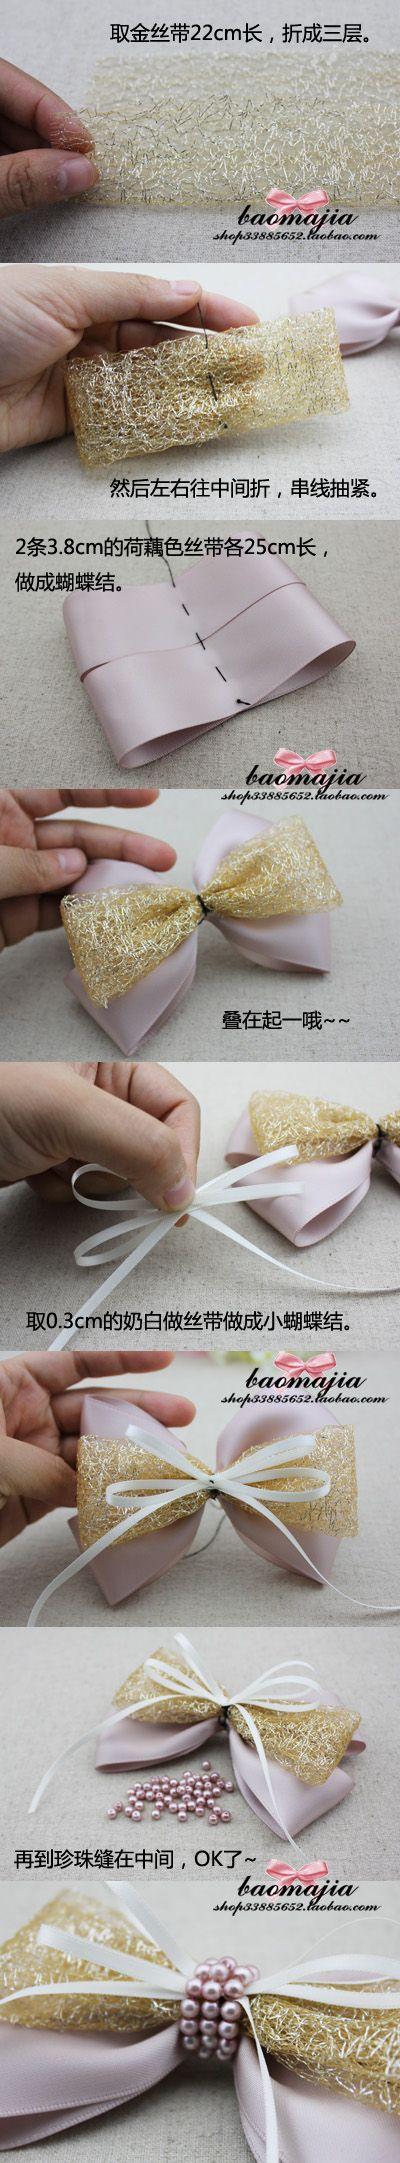 tutorial for a cute bow